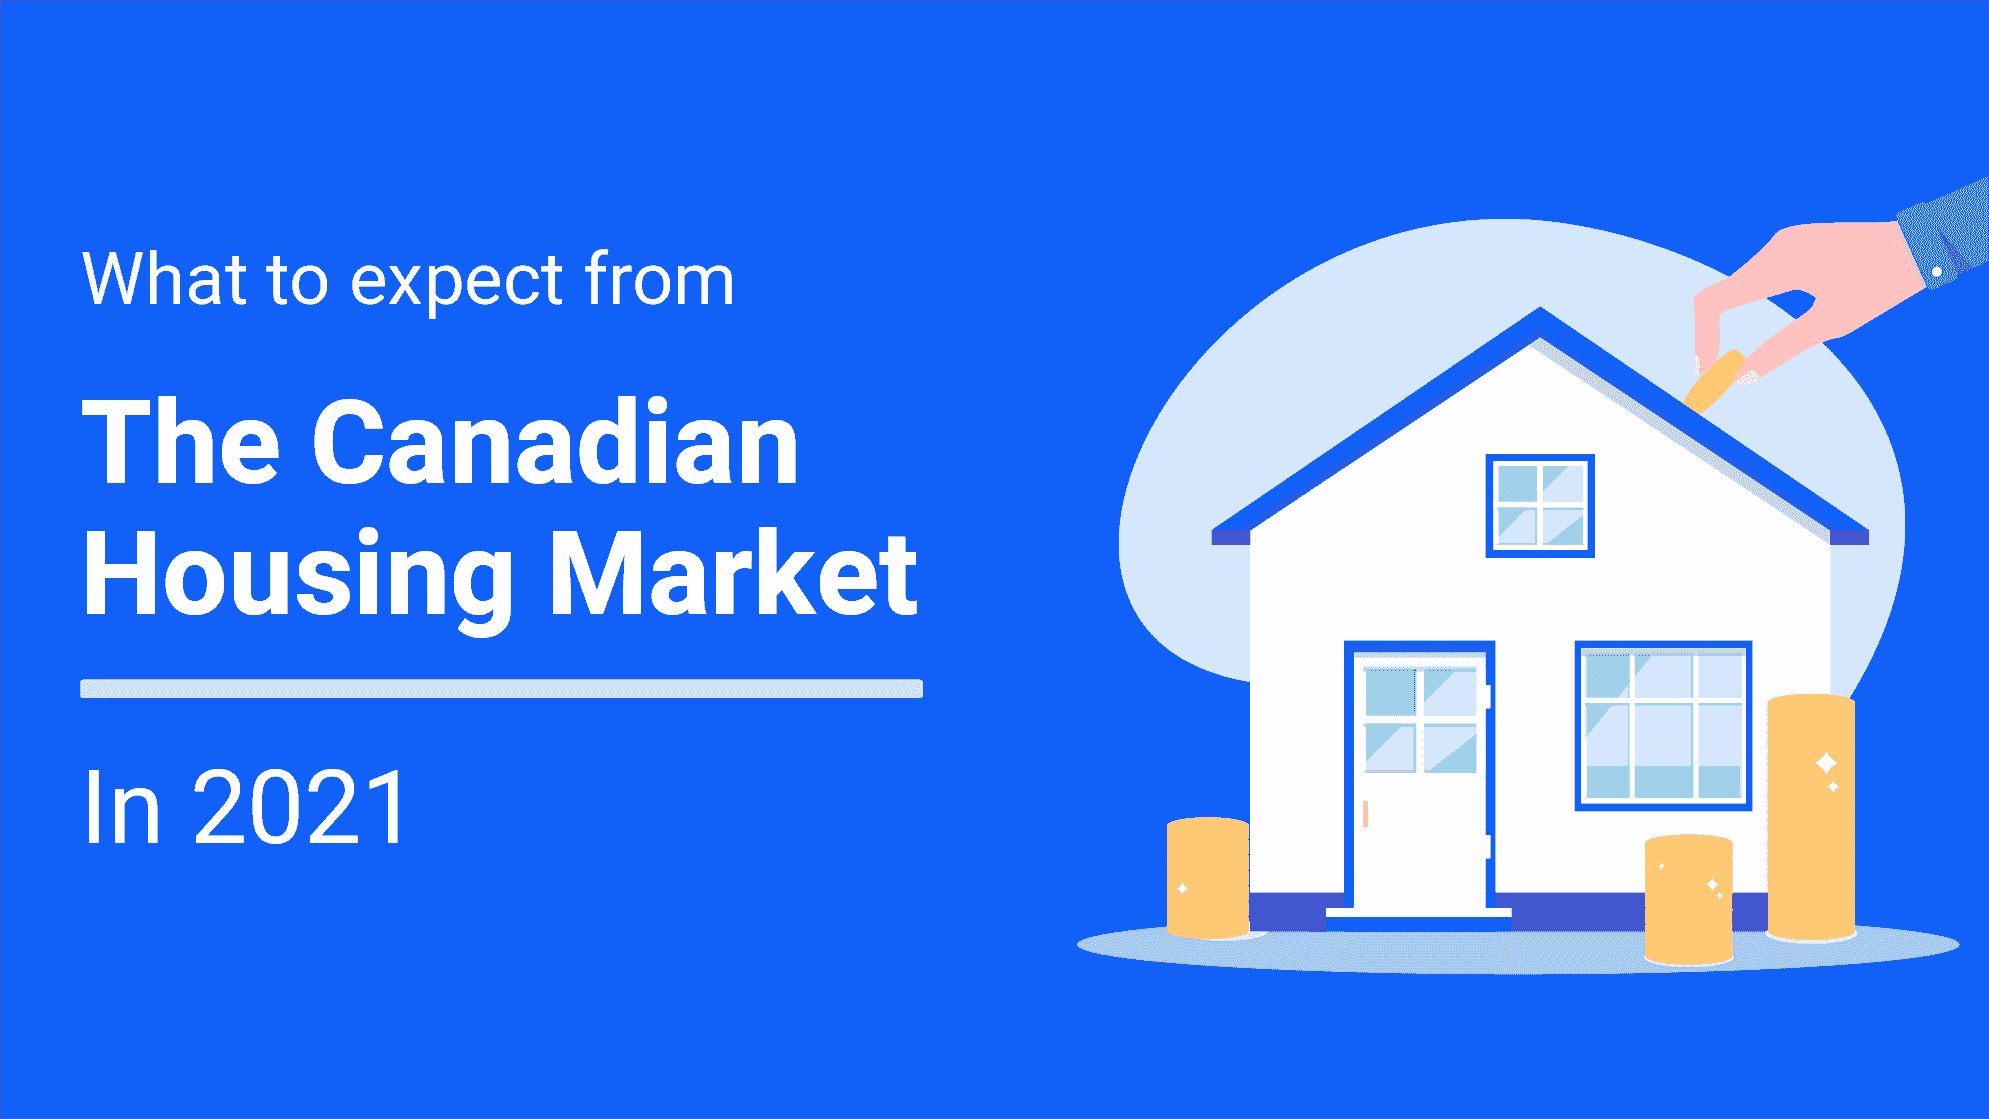 What to Expect from the Canadian Housing Market in 2021